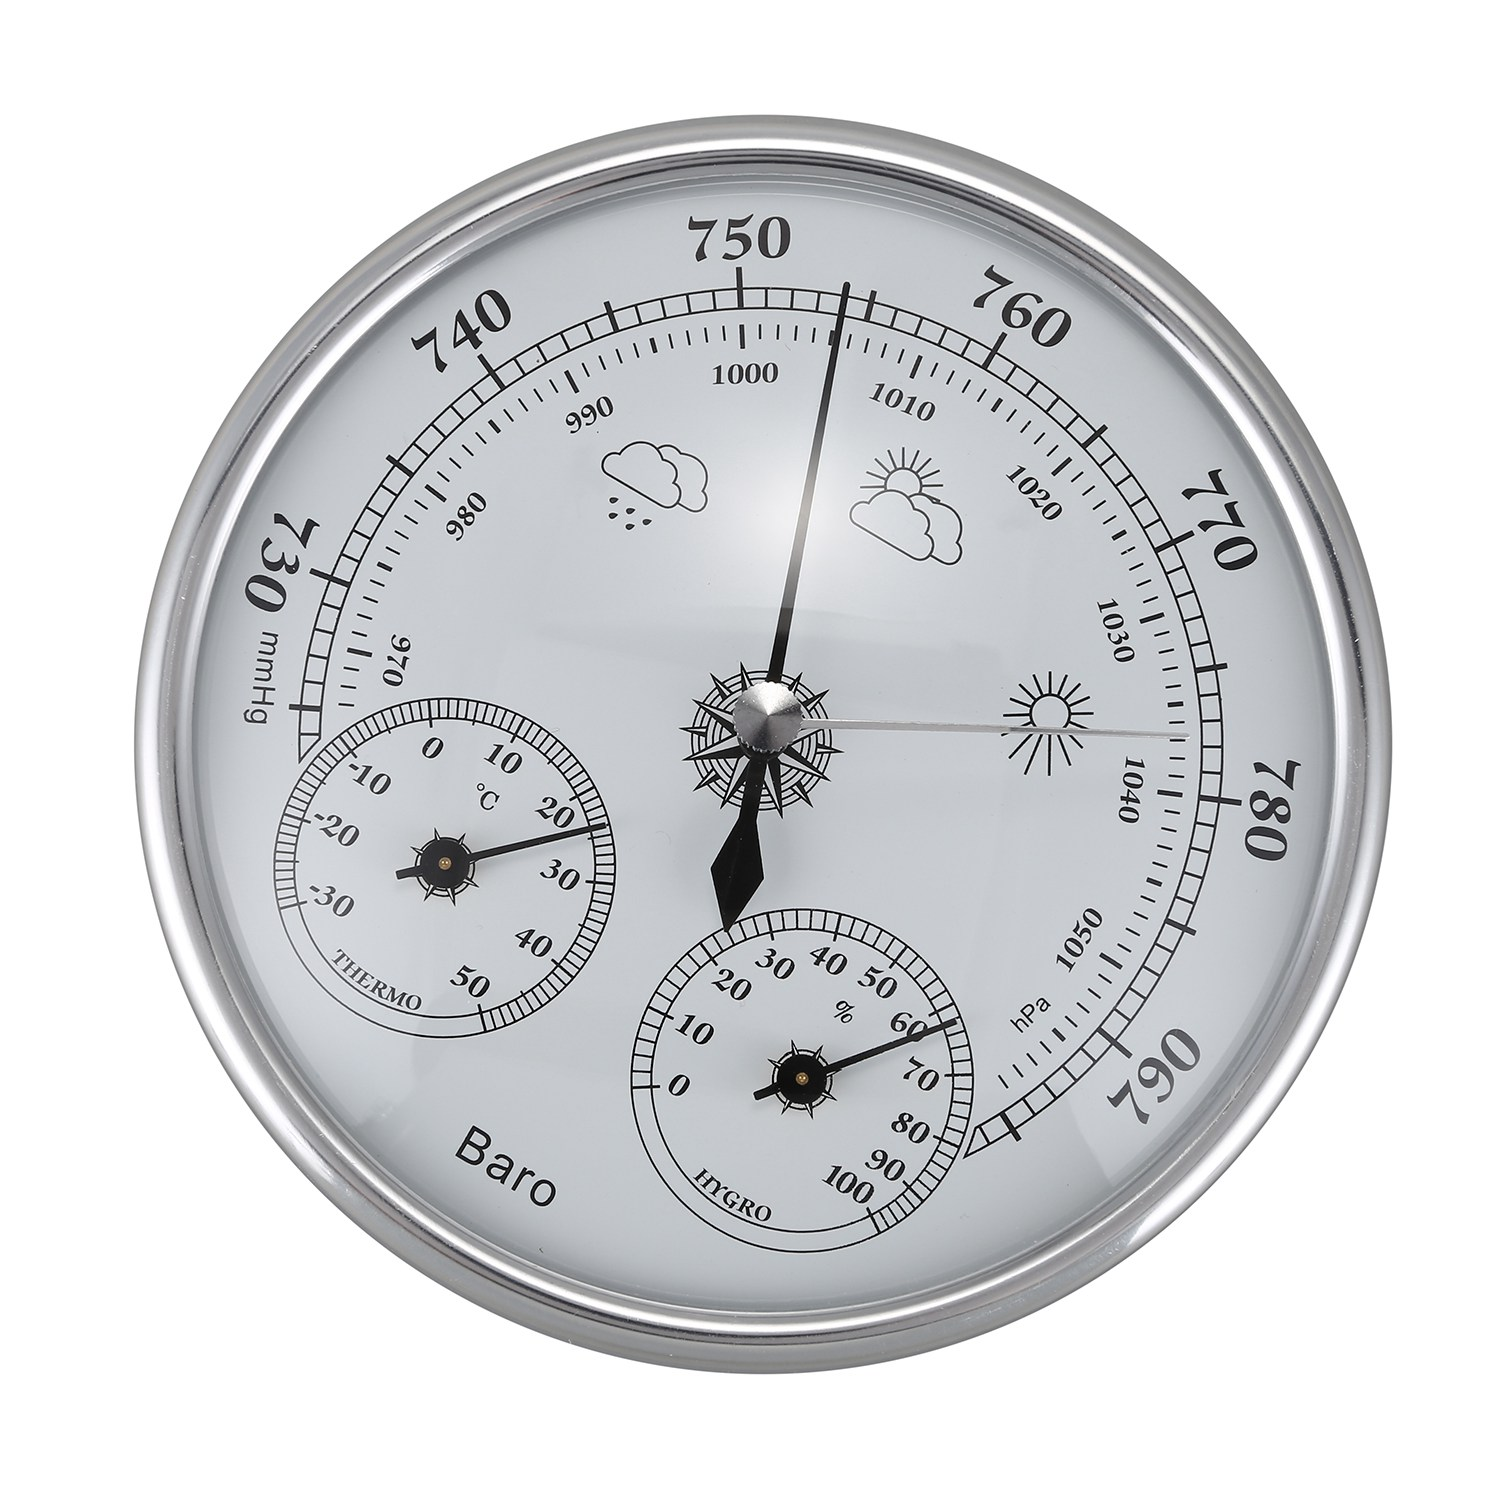 Hot Sale Wall Mounted Household Thermometer Hygrometer High Accuracy Pressure Gauge Air Weather Instrument BarometerHot Sale Wall Mounted Household Thermometer Hygrometer High Accuracy Pressure Gauge Air Weather Instrument Barometer